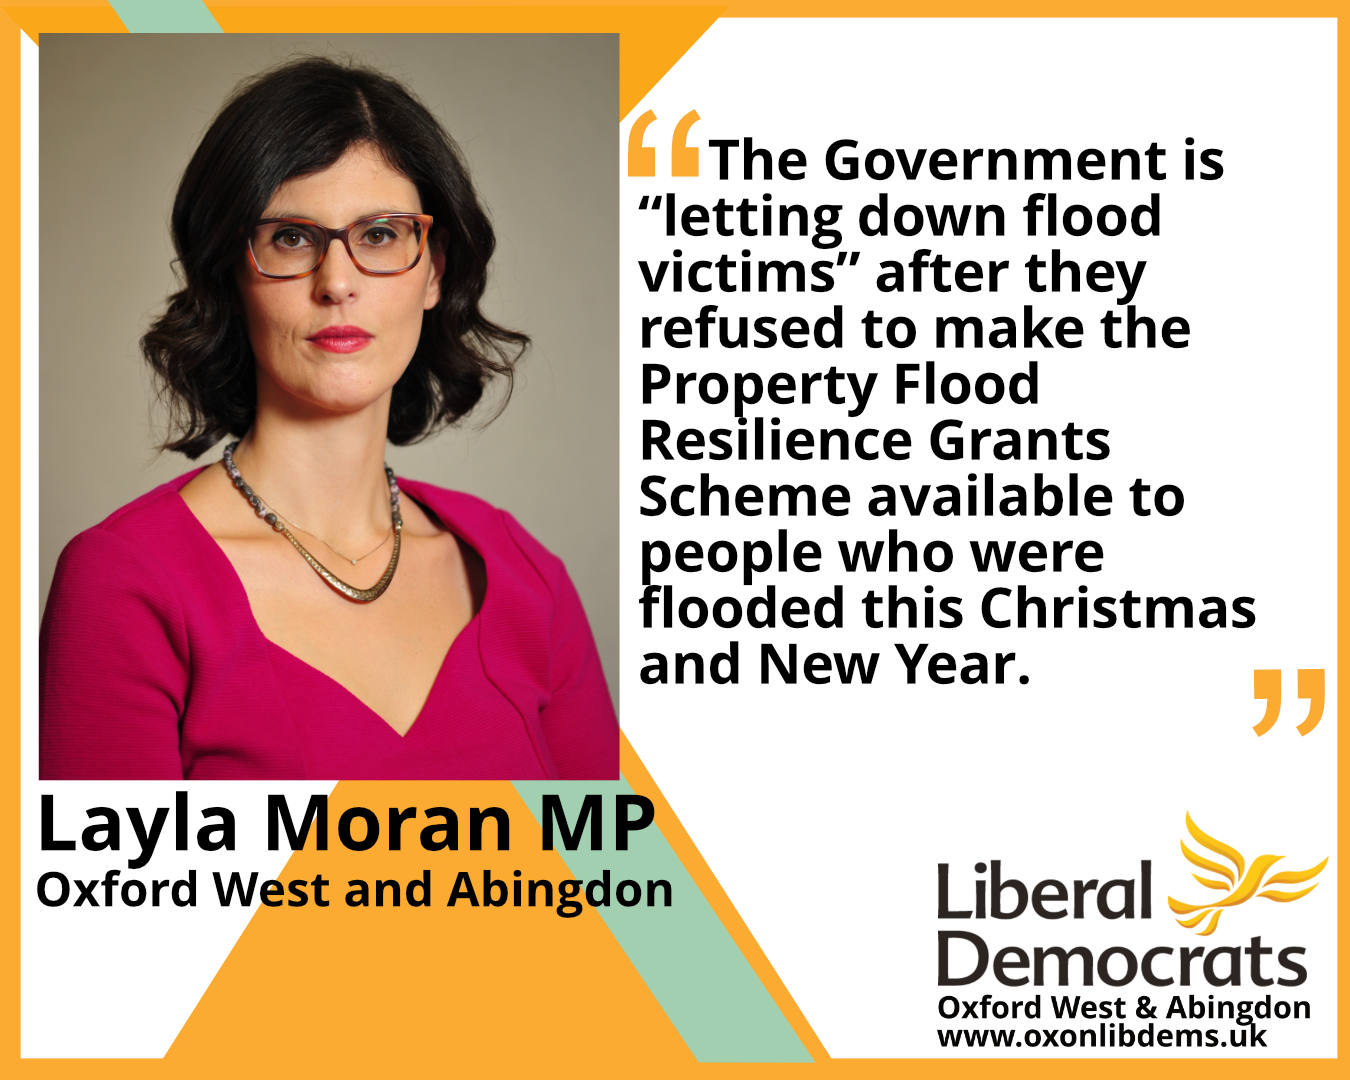 """The Government is """"letting down flood victims"""" after they refused to make the Property Flood Resilience Grants Scheme available to people who were flooded this Christmas and New Year"""